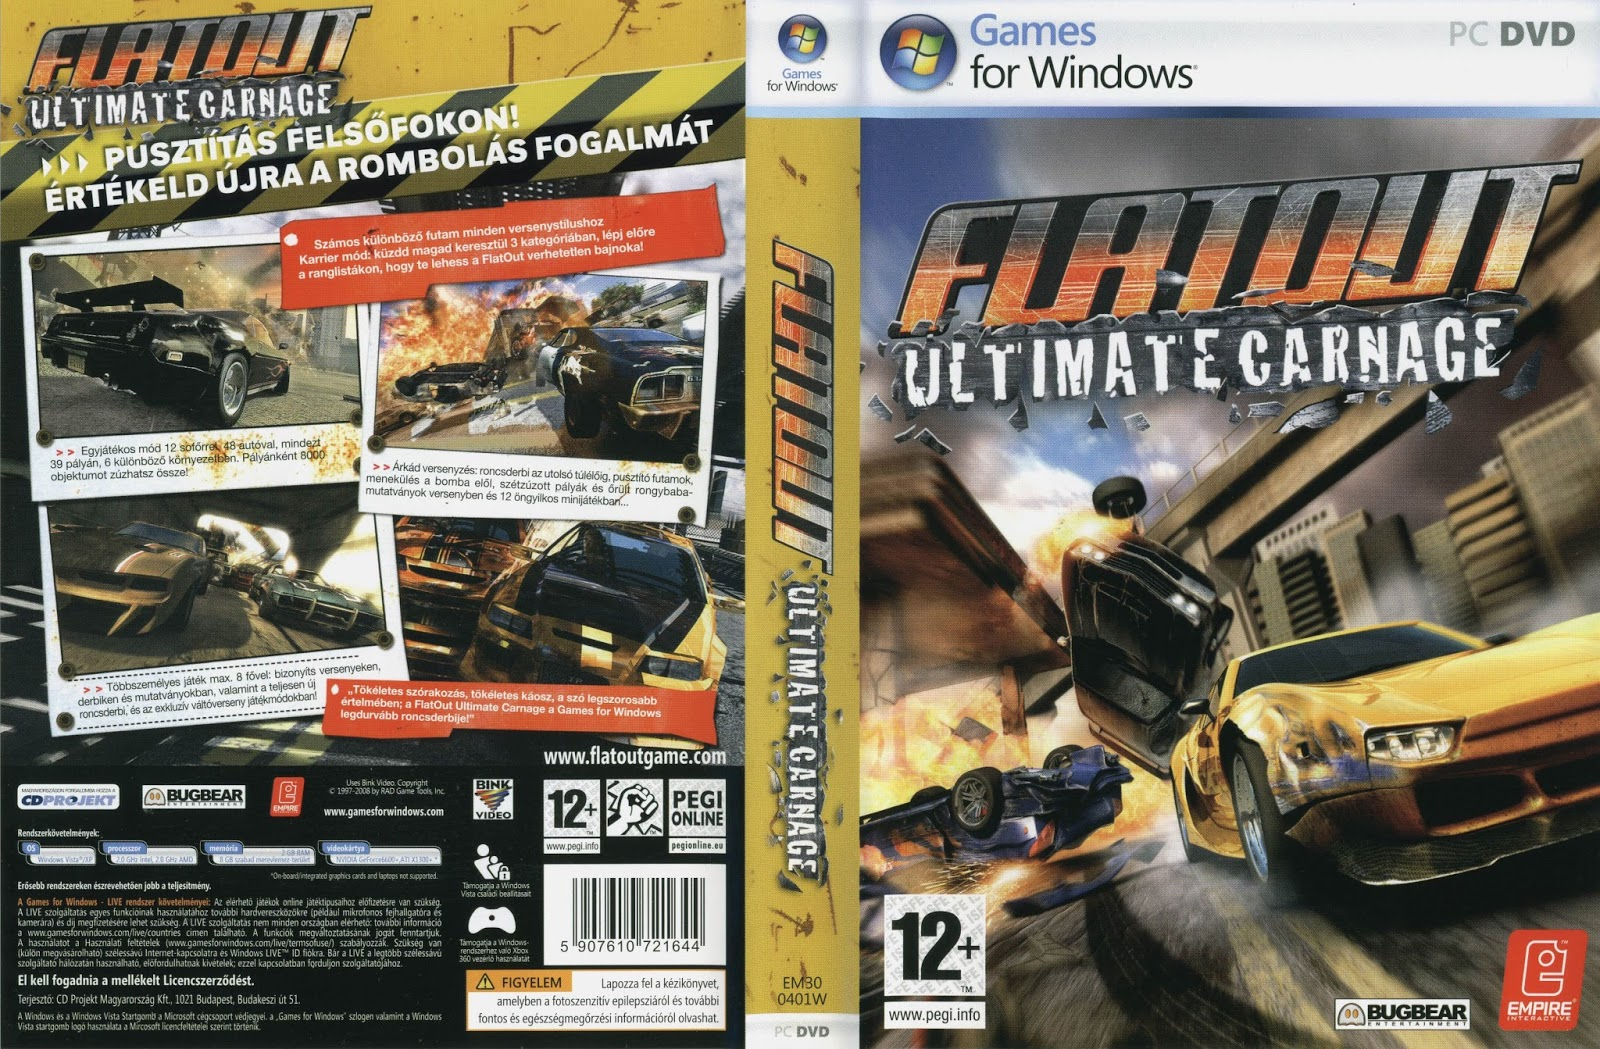 flatout 2 ultimate carnage download torrent